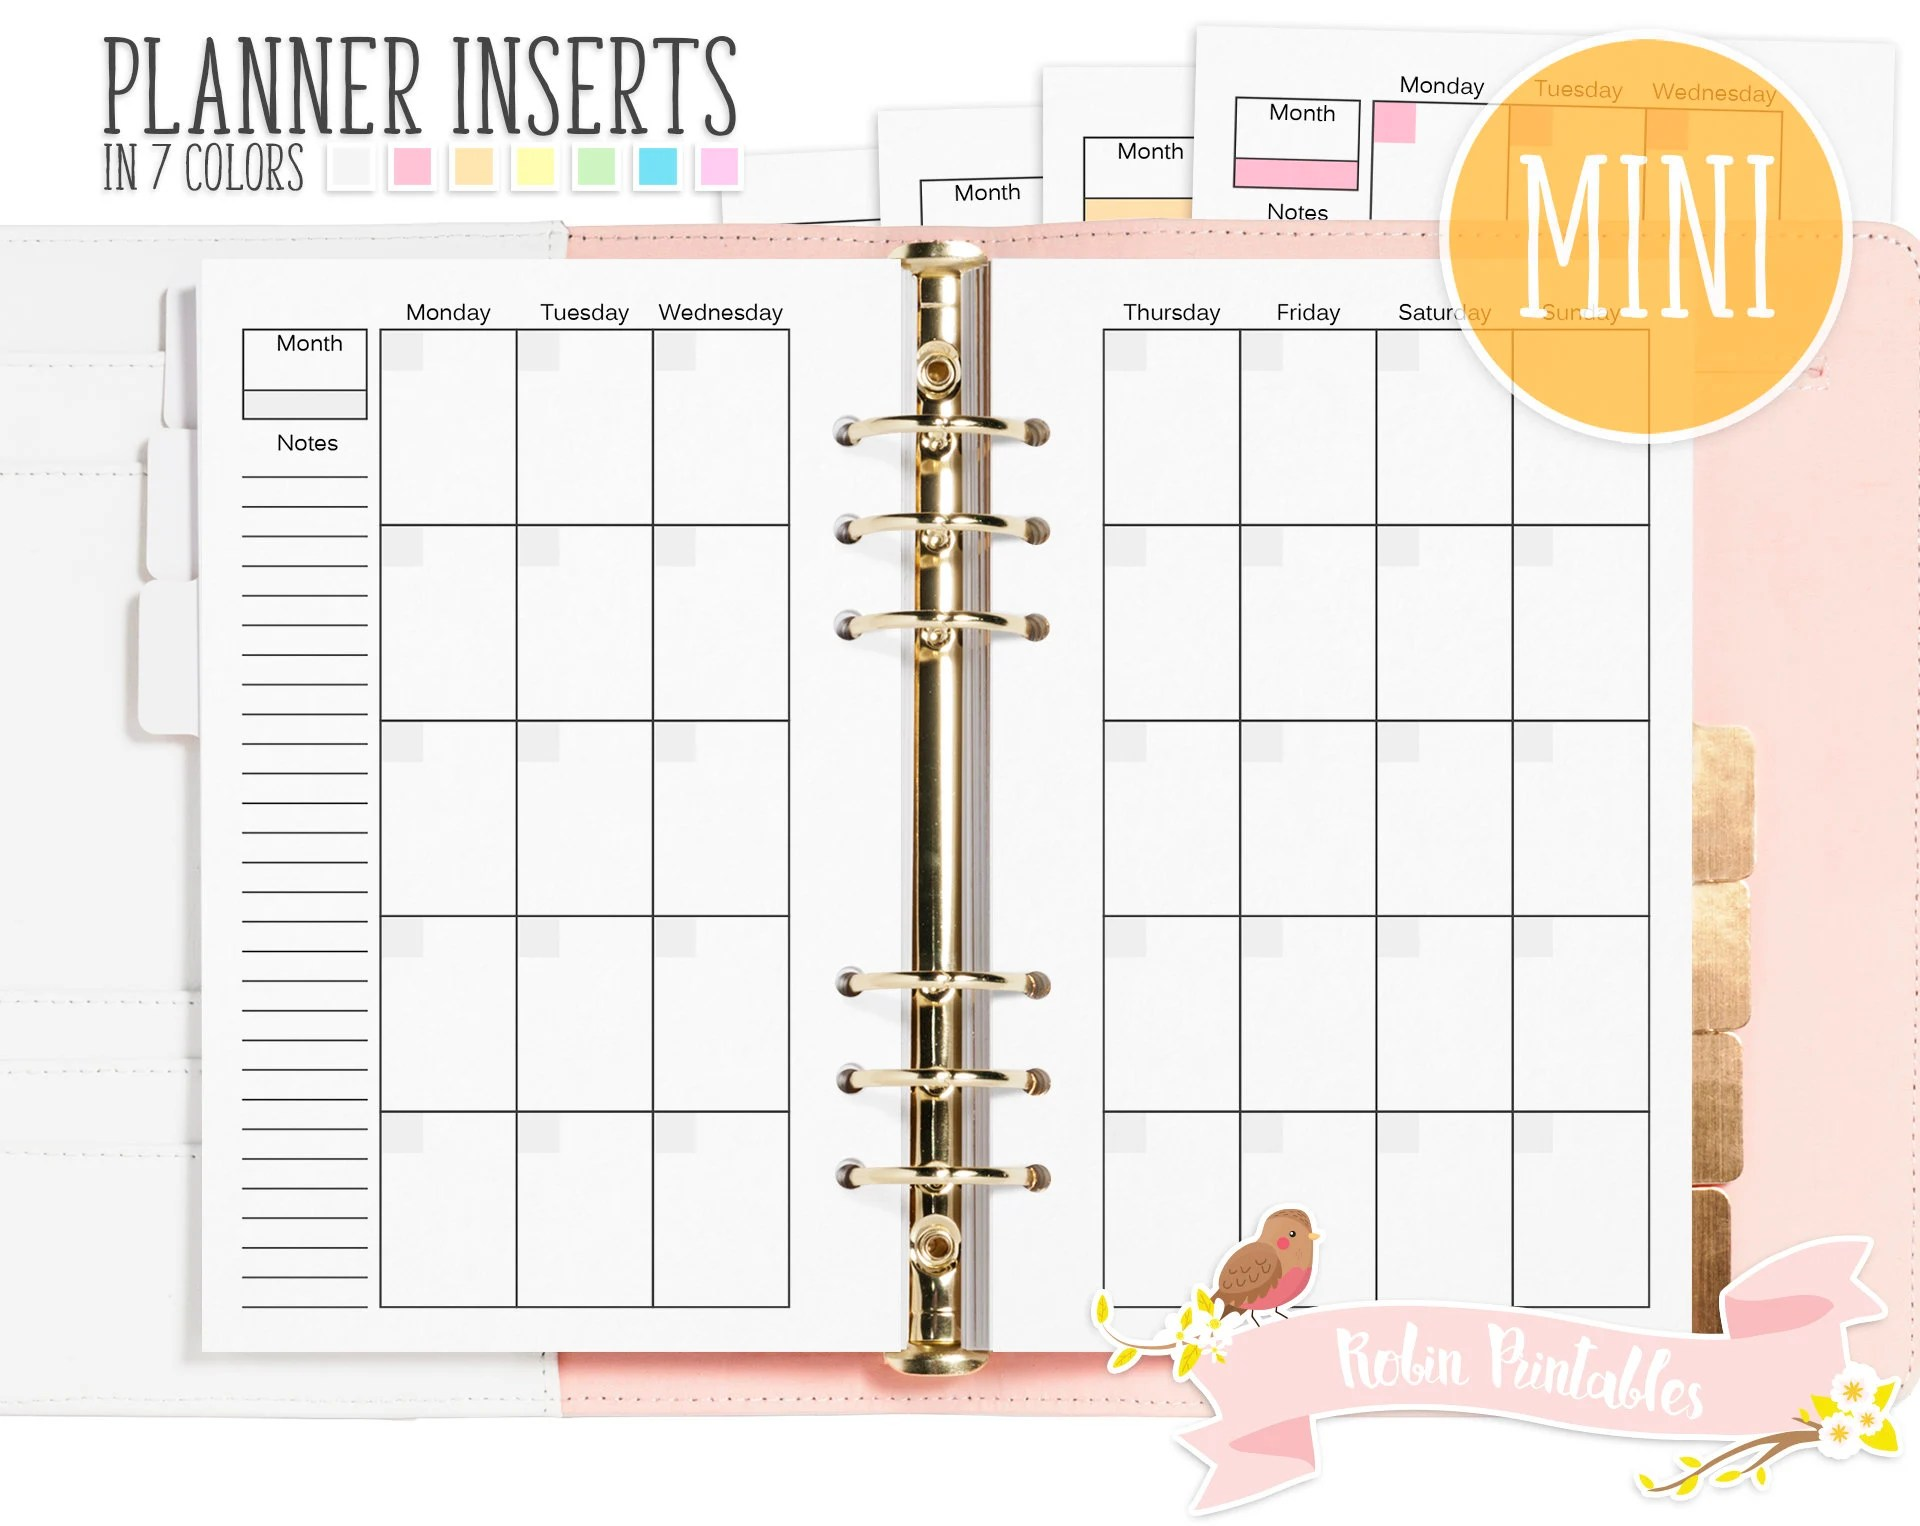 Mini Monthly Organizer Printable Binder Inserts Fits Planners Like